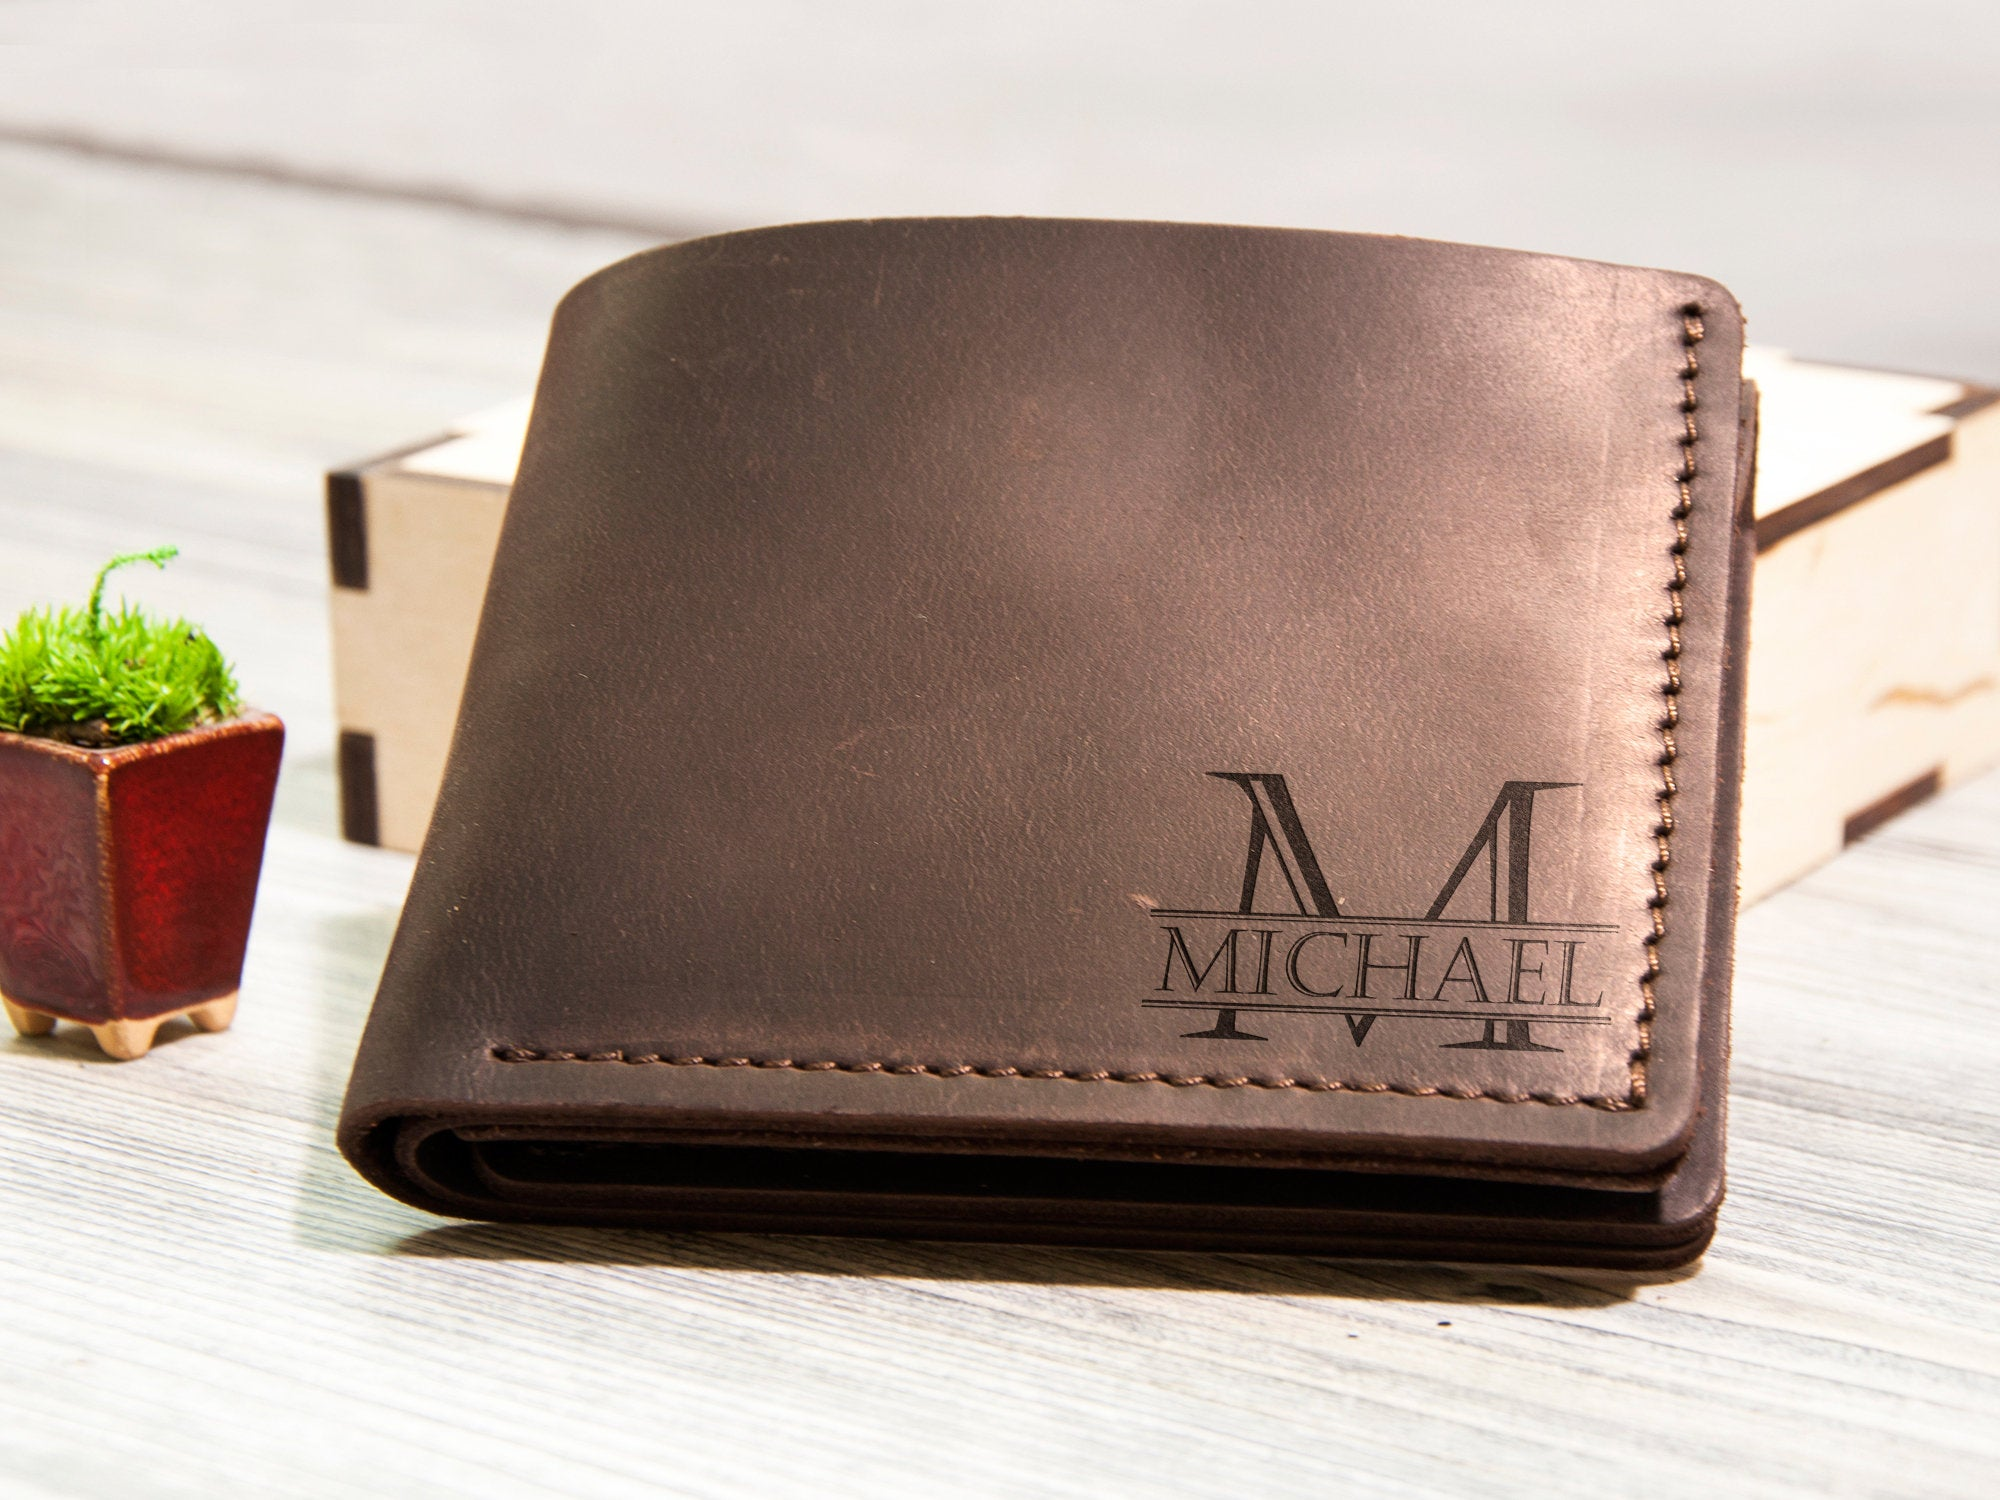 Personalized Gift for Men Personalized Mens Wallet Leather Gift for Him Personalized Leather Wallet Groomsmen Gift Fathers Day Gift for Dad